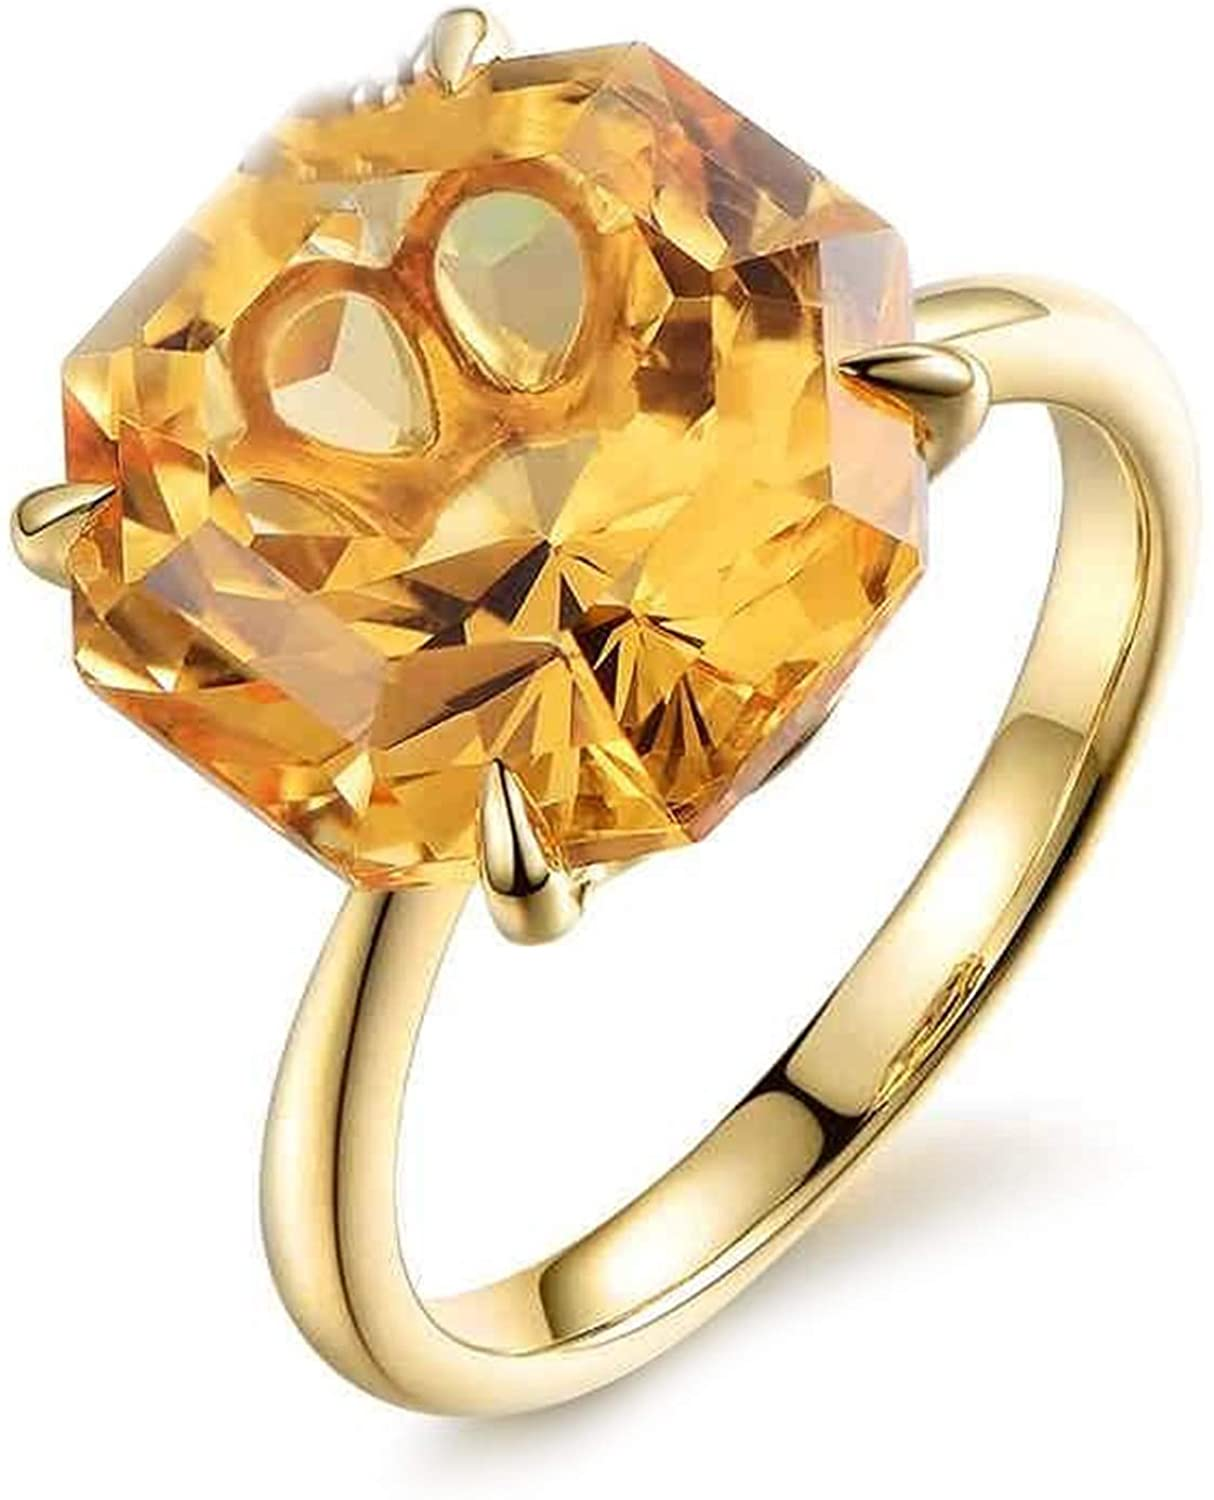 AMDXD 18K Yellow Gold Ring for Women, Large Citrine 9.5ct Anniversary Ring Gold Size 6.5